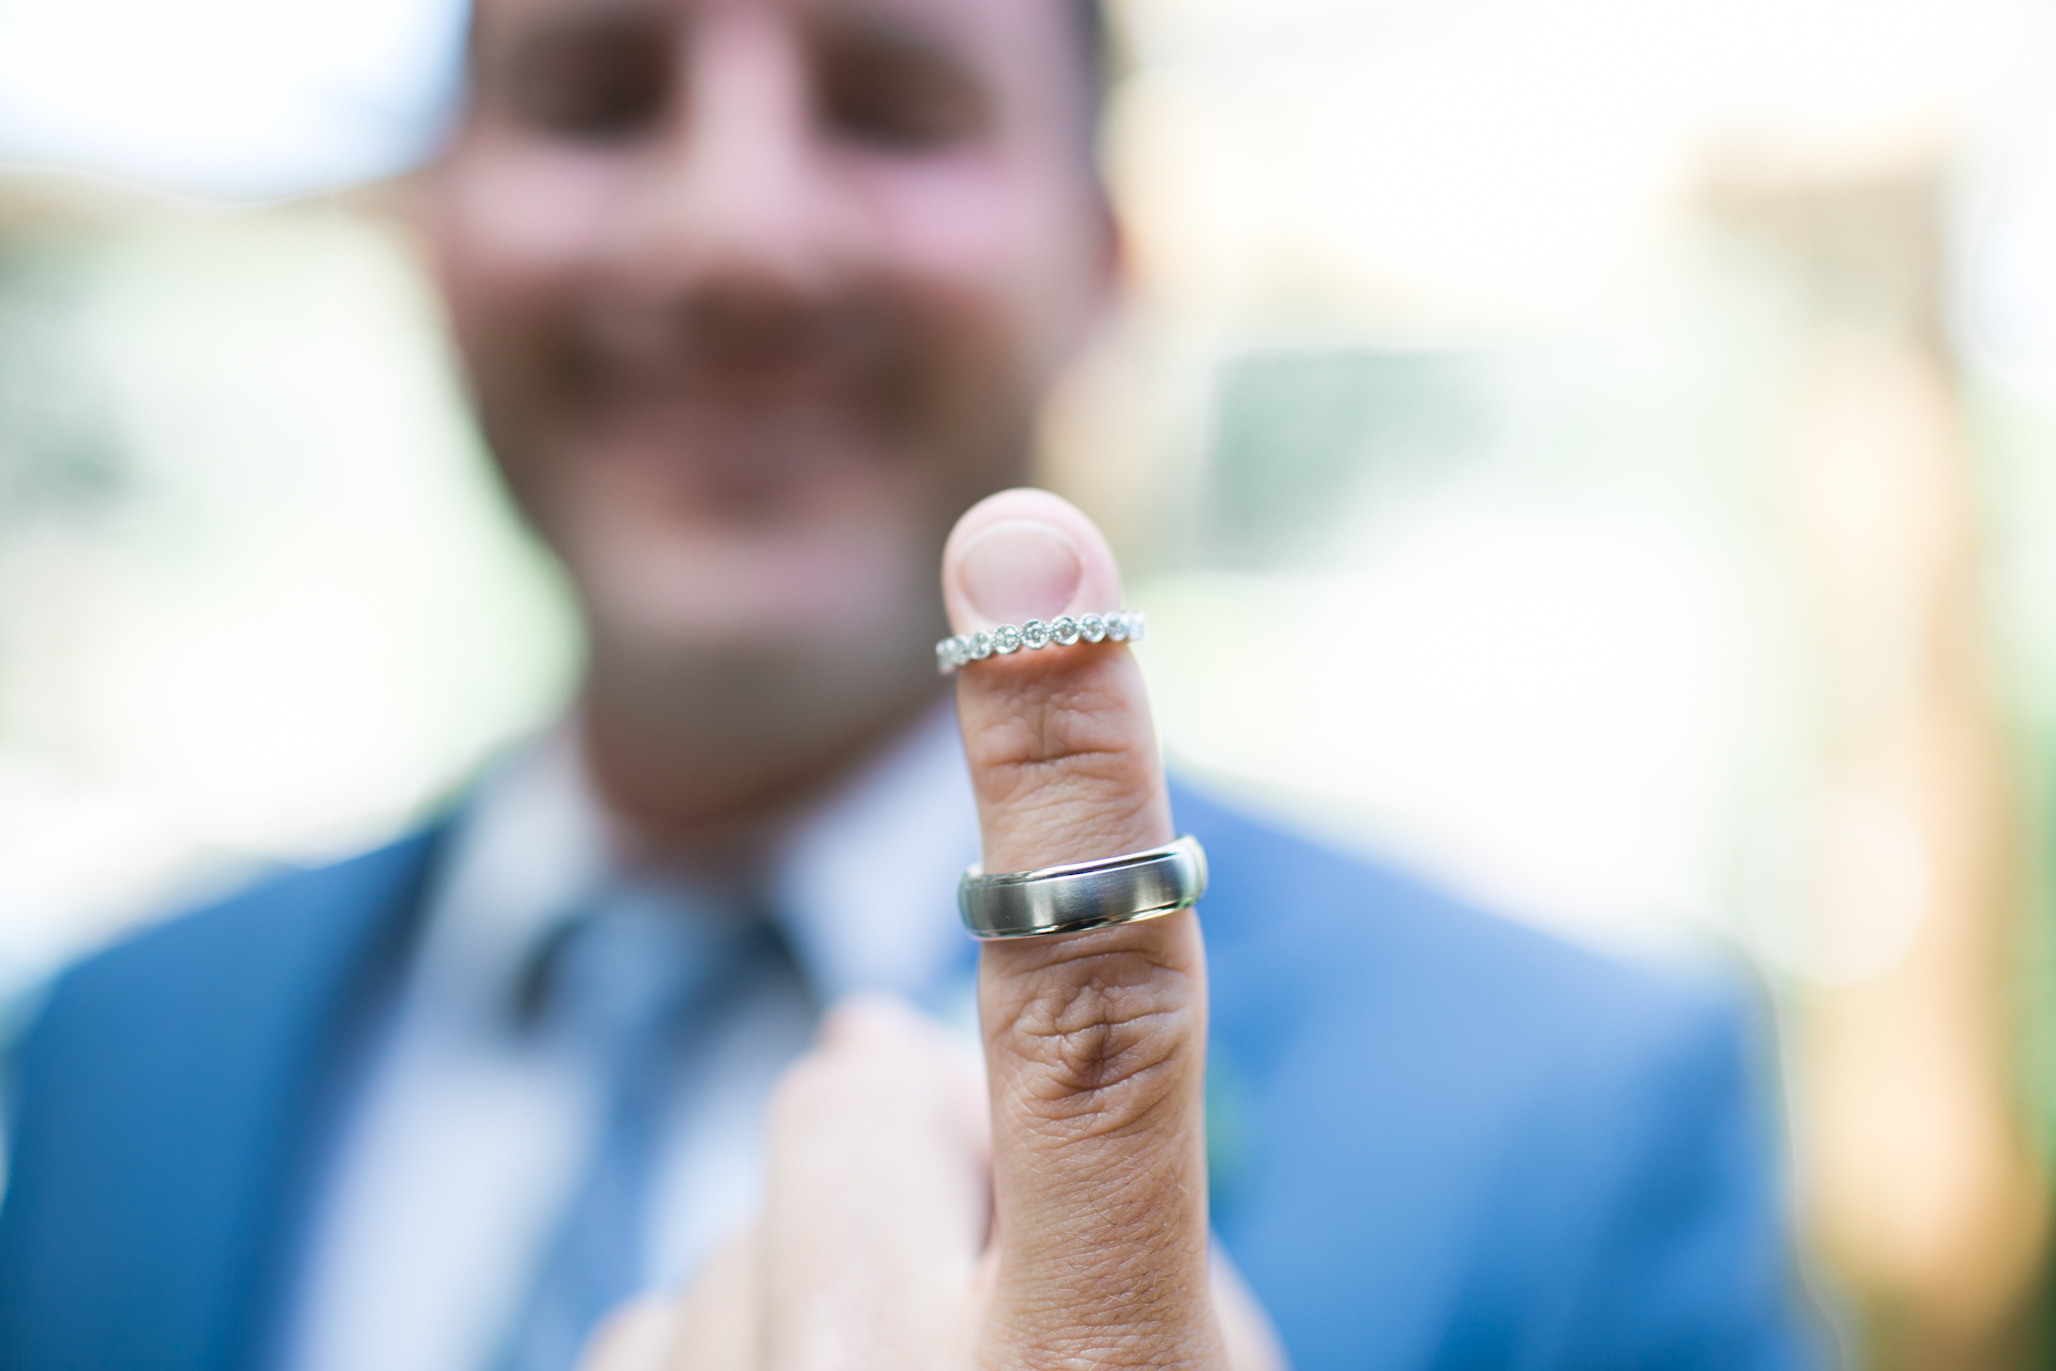 Best man looking as proud as ever to be standing by his brother with these pretty rings